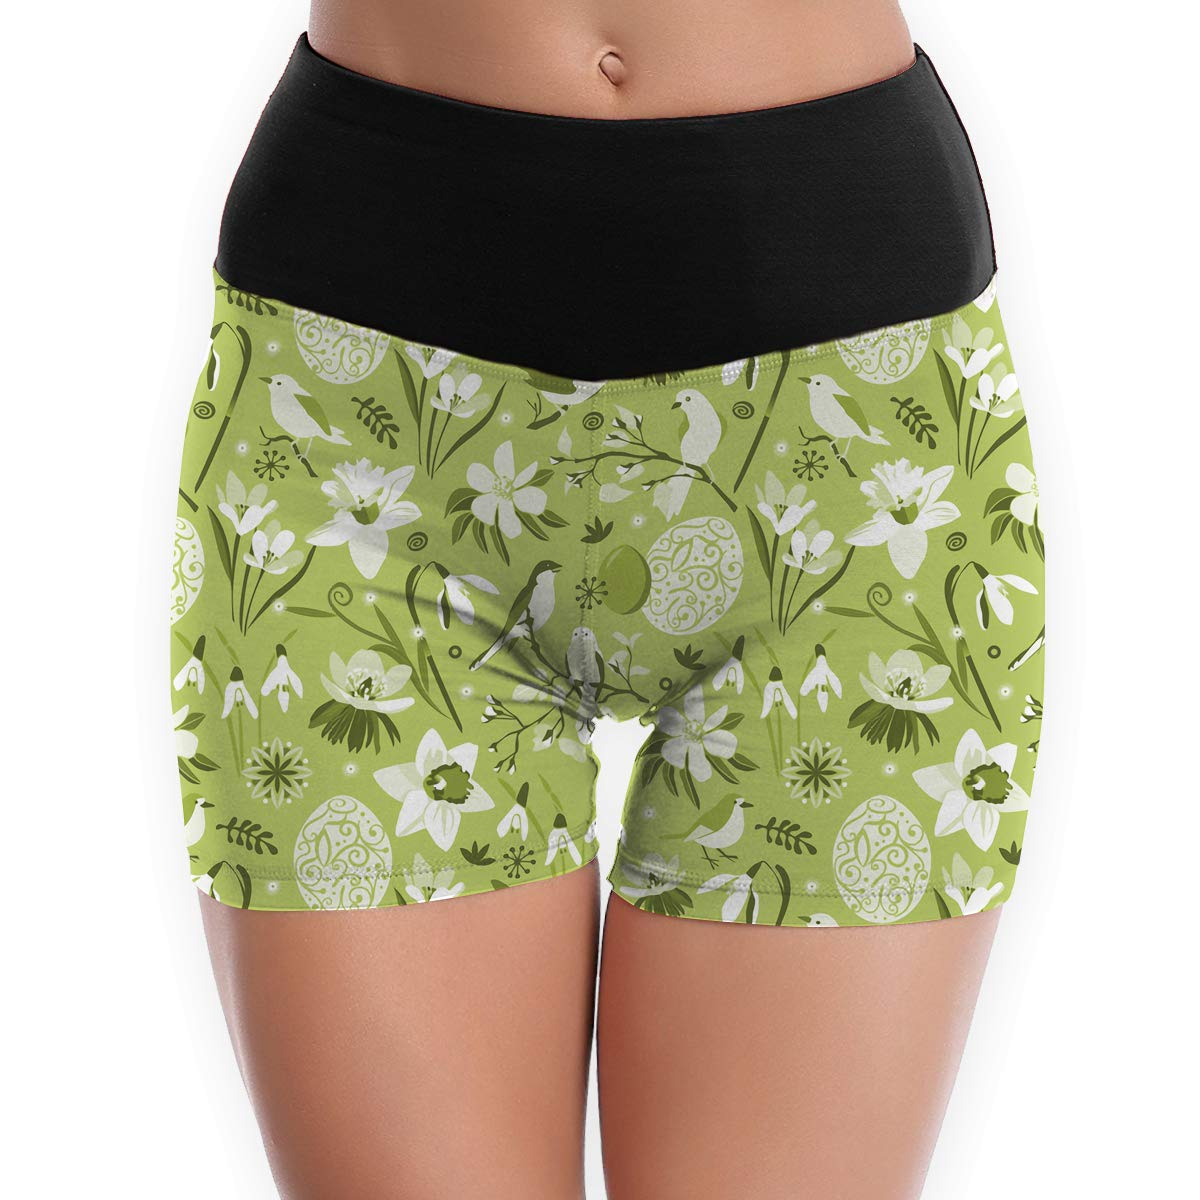 White Flowers and Birds Eggs Easter Yoga Tights Short Running Pants Workout